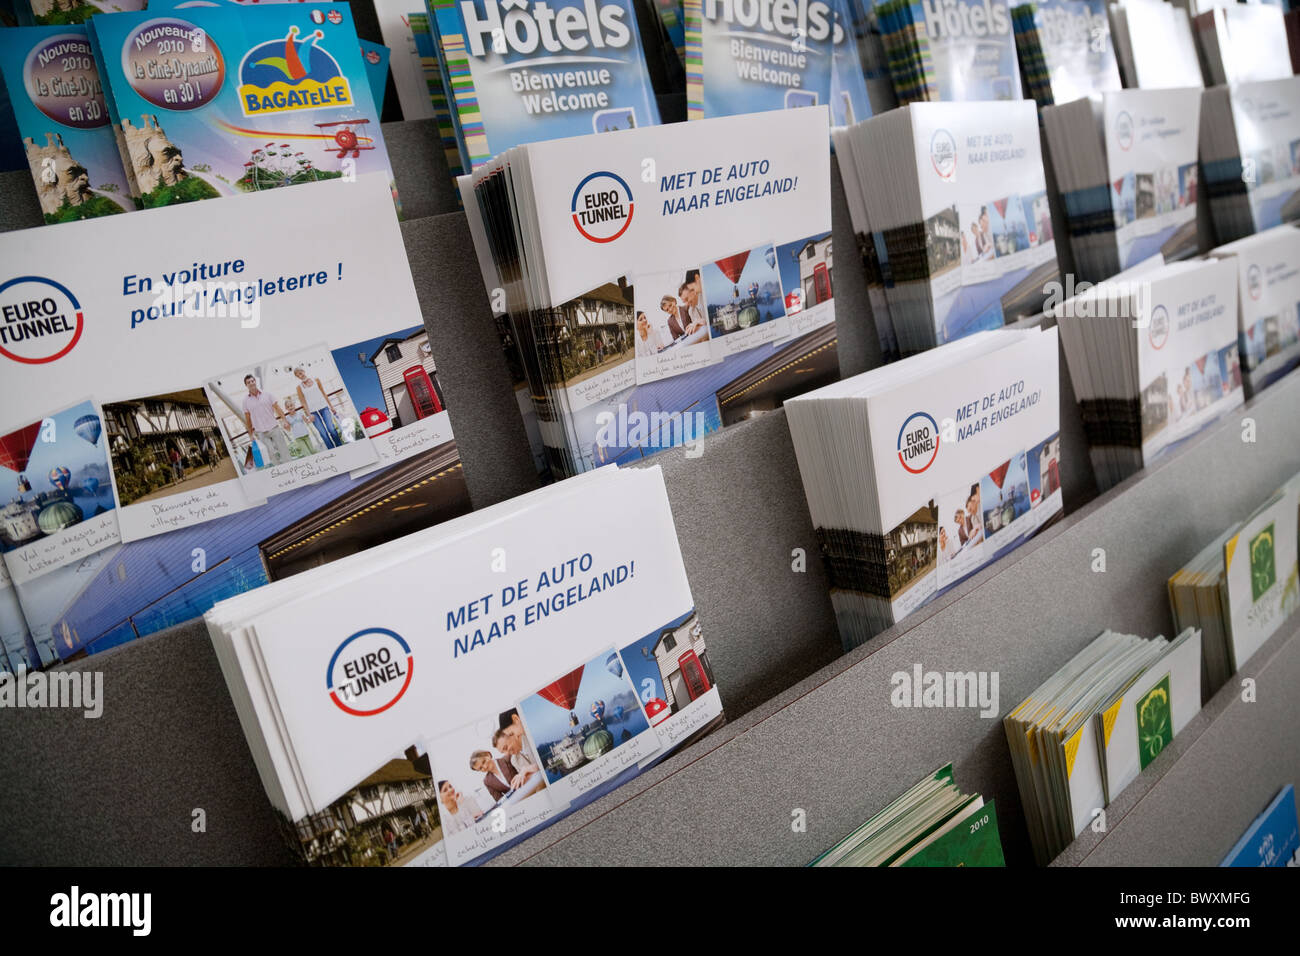 Eurotunnel leaflets in different european languages at the French terminal, Eurotunnel, Calais France - Stock Image